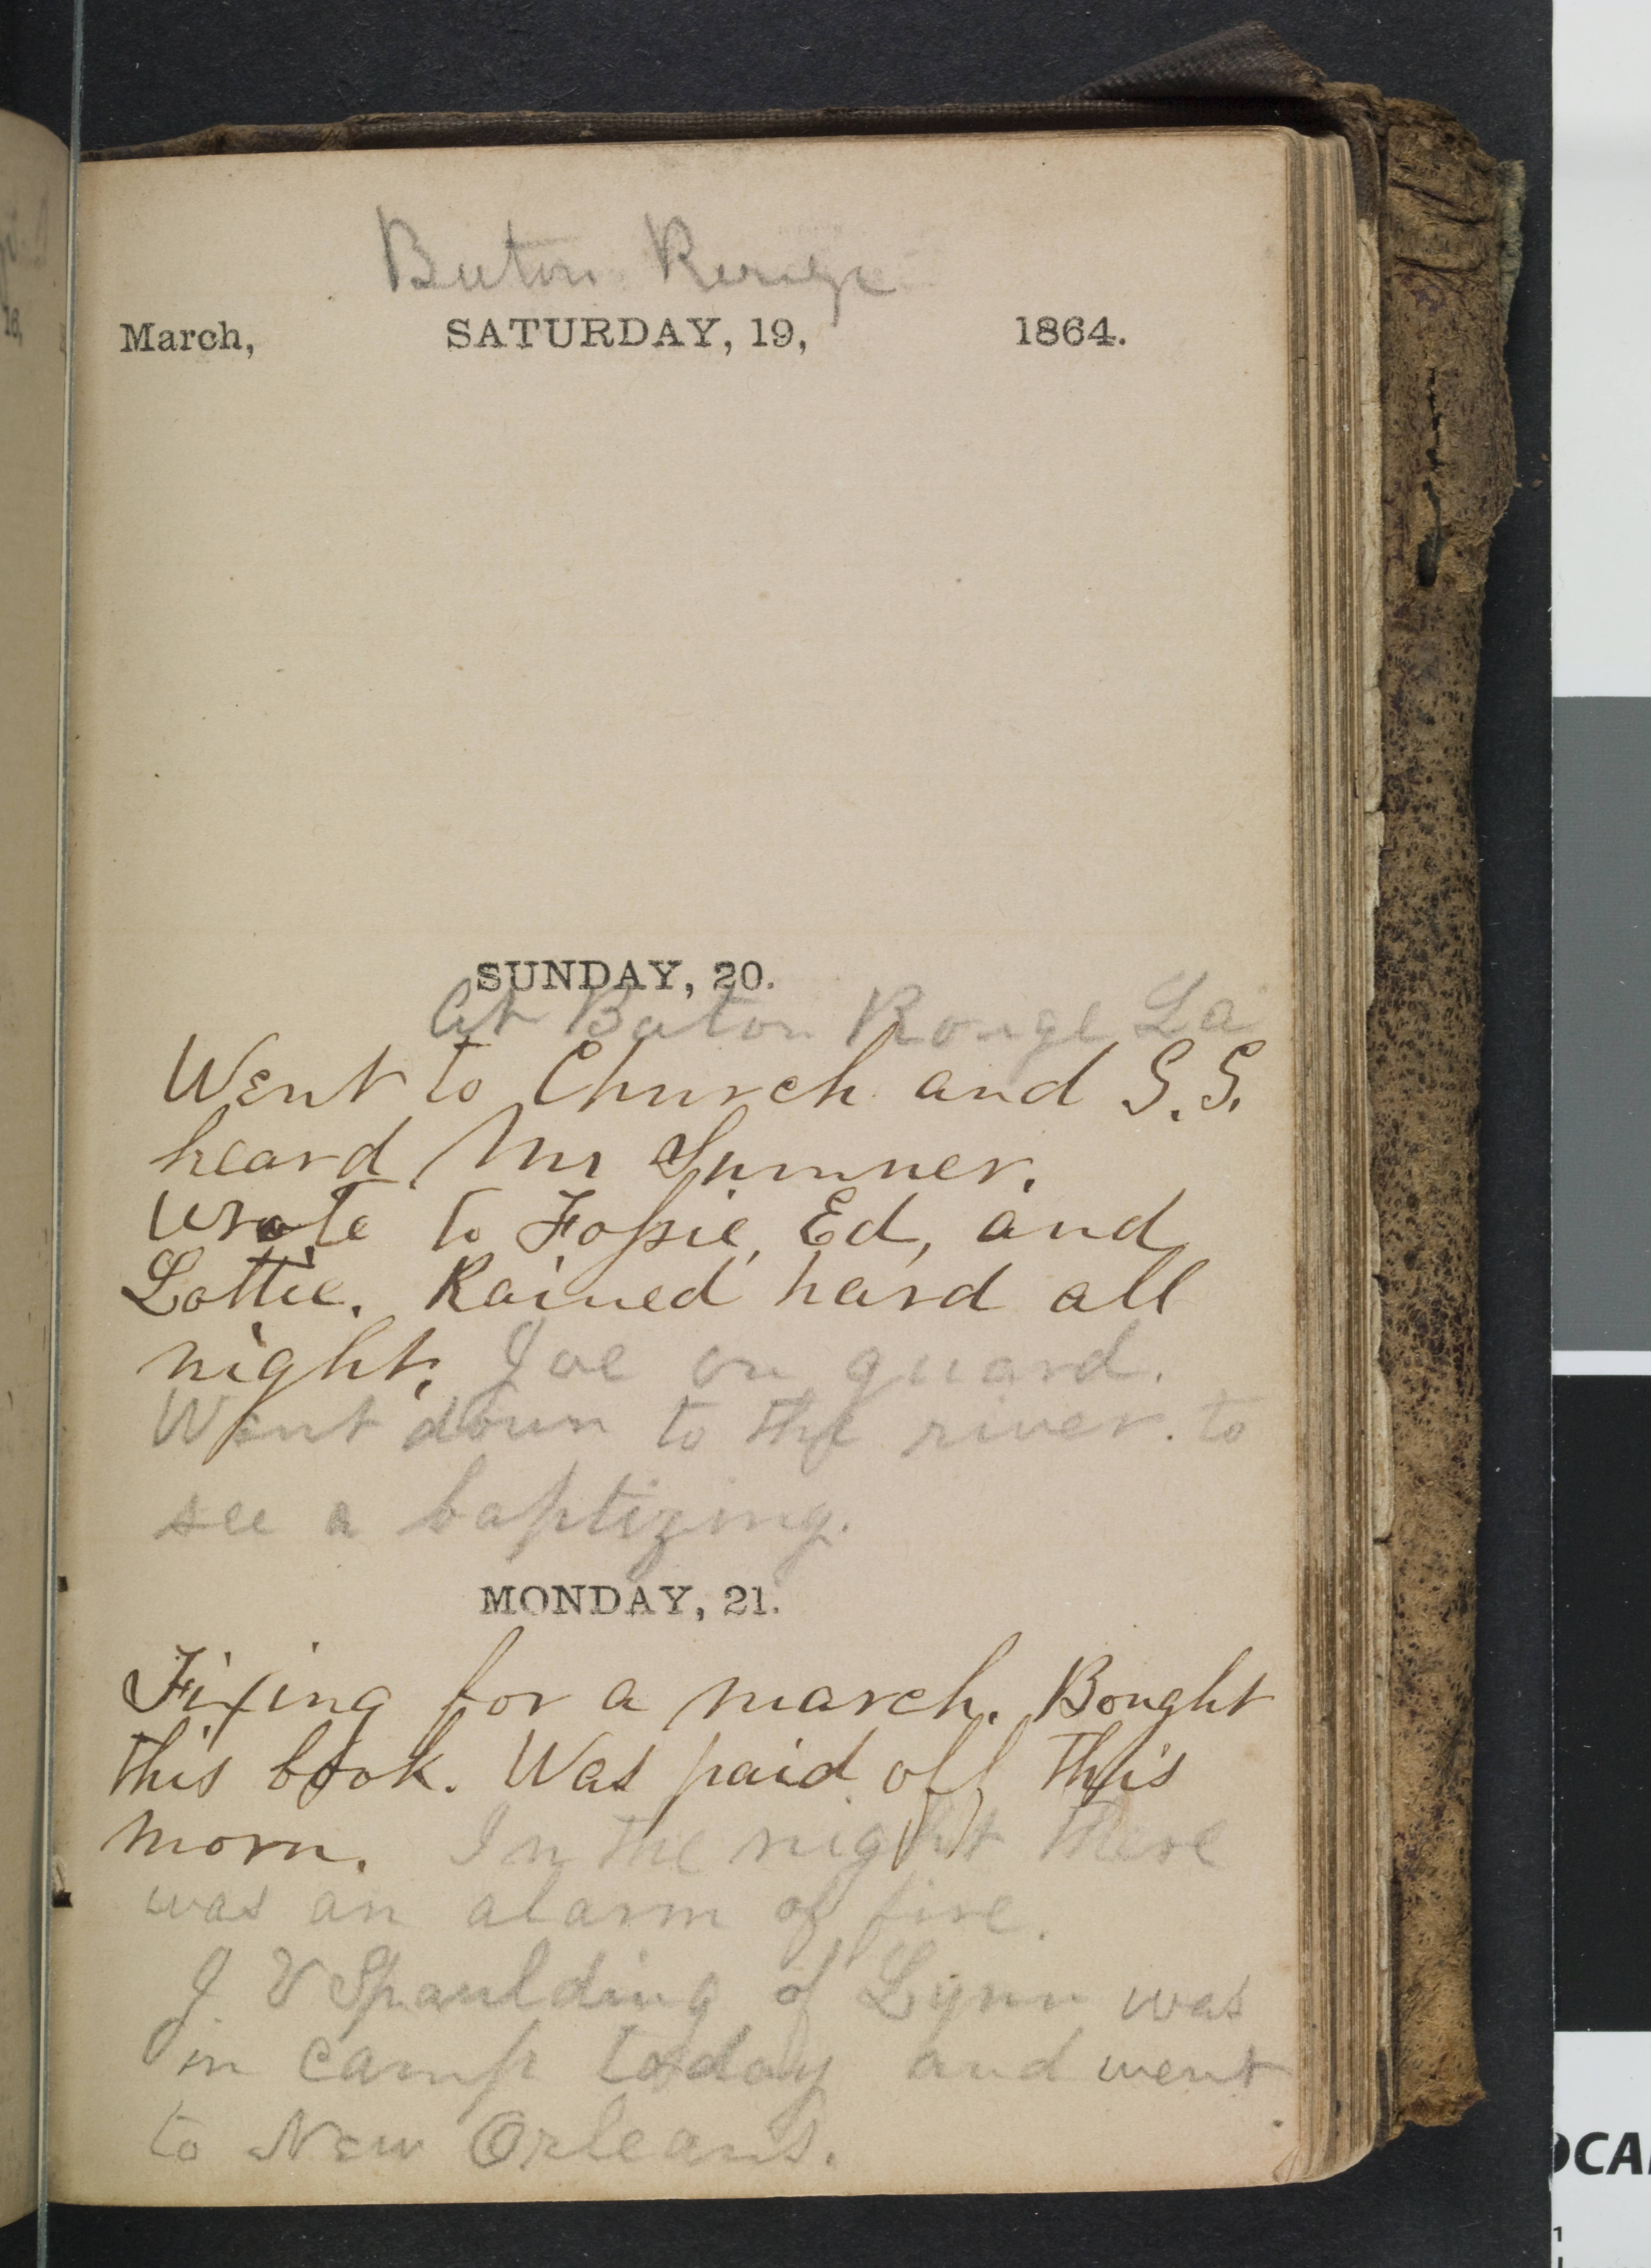 An opened diary displaying an entry for March 20 and 21 in 1864